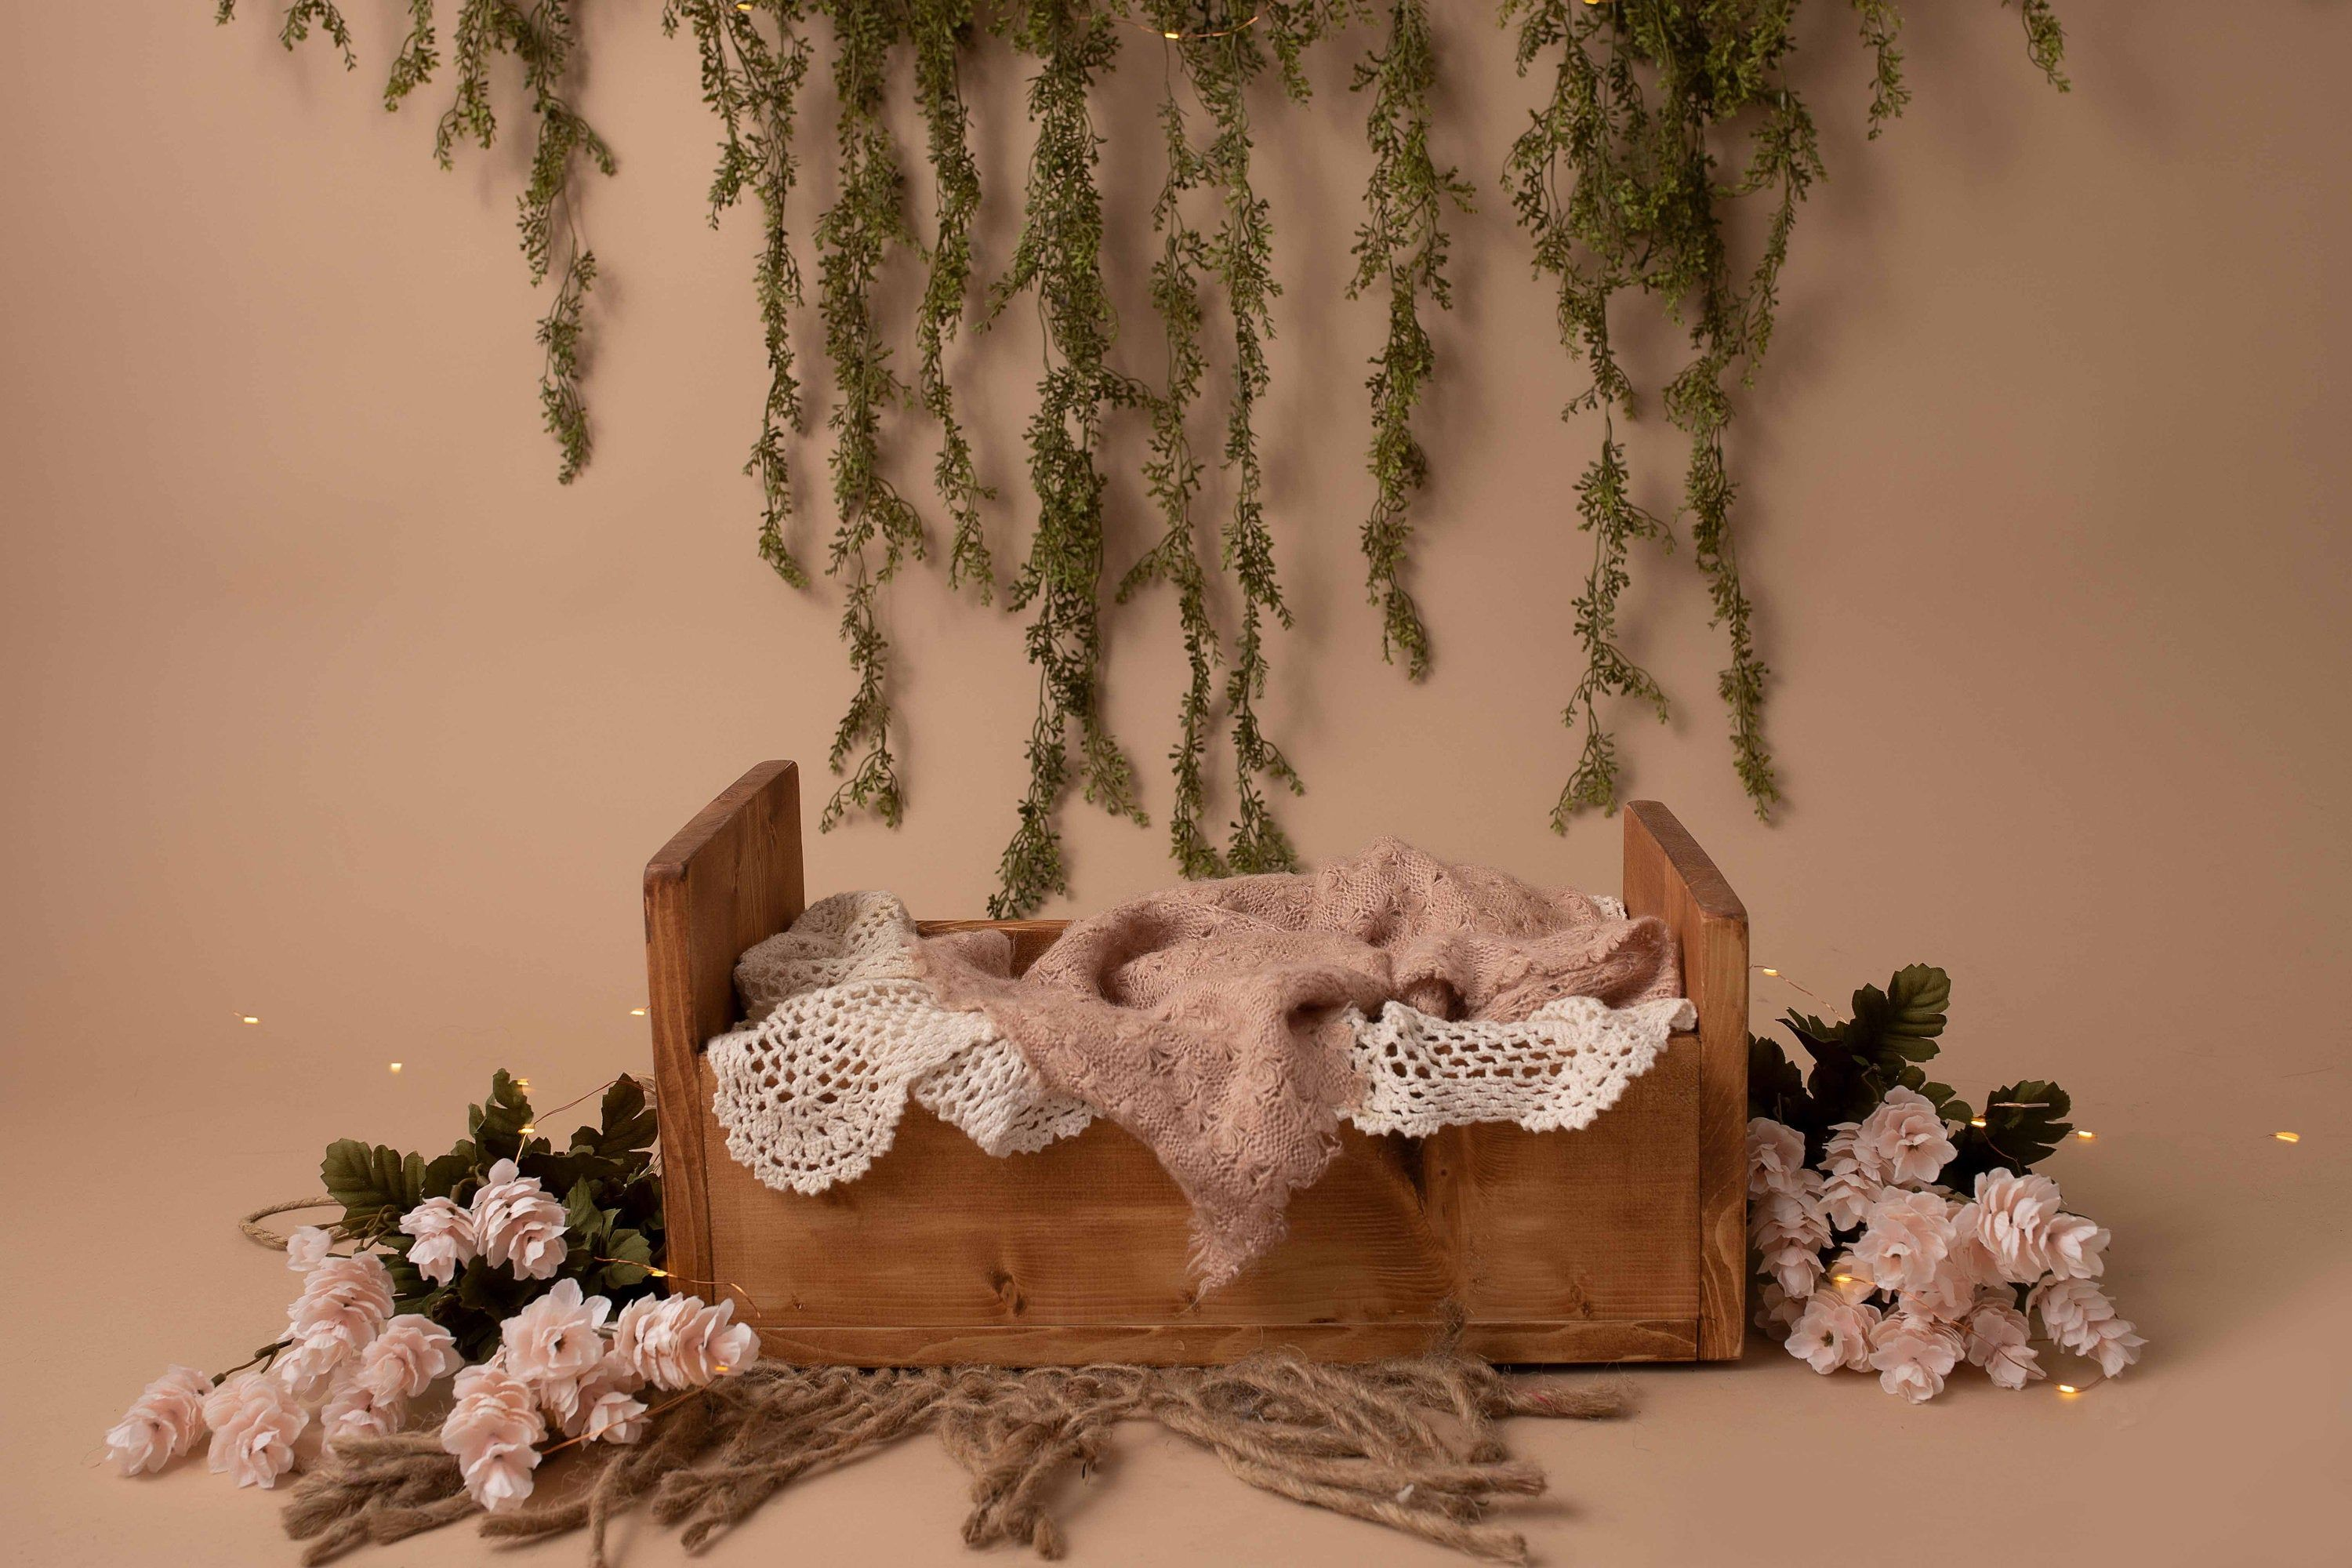 Simple Wooden Bed with Greenery, Flowers, and Twinkle